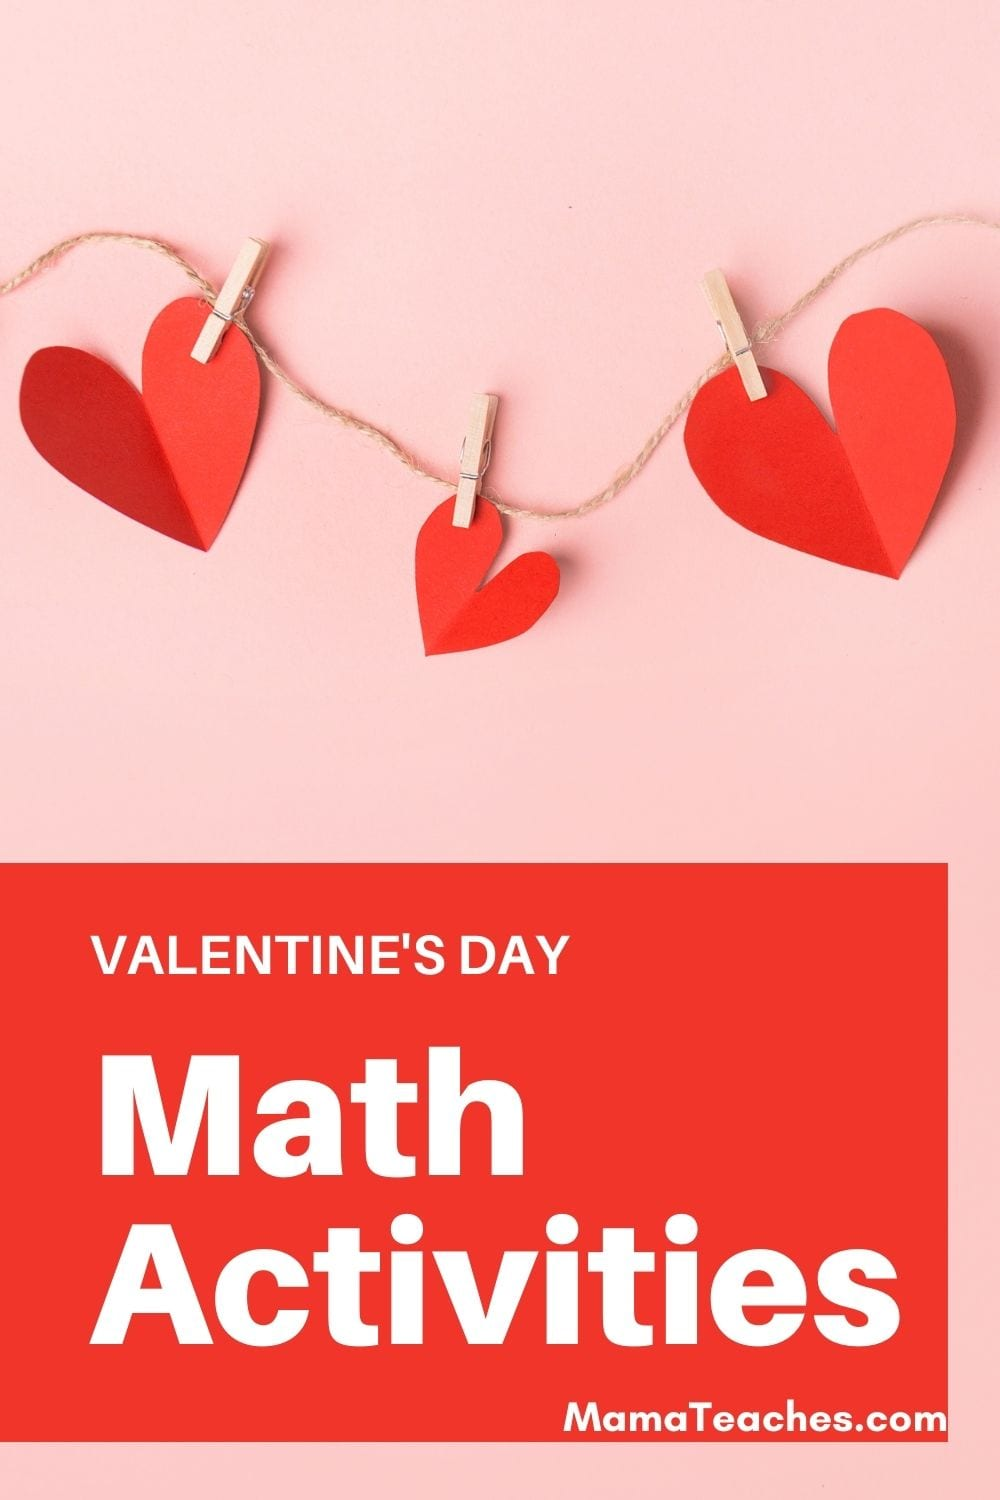 Valentine's Day Math Activities for Kids